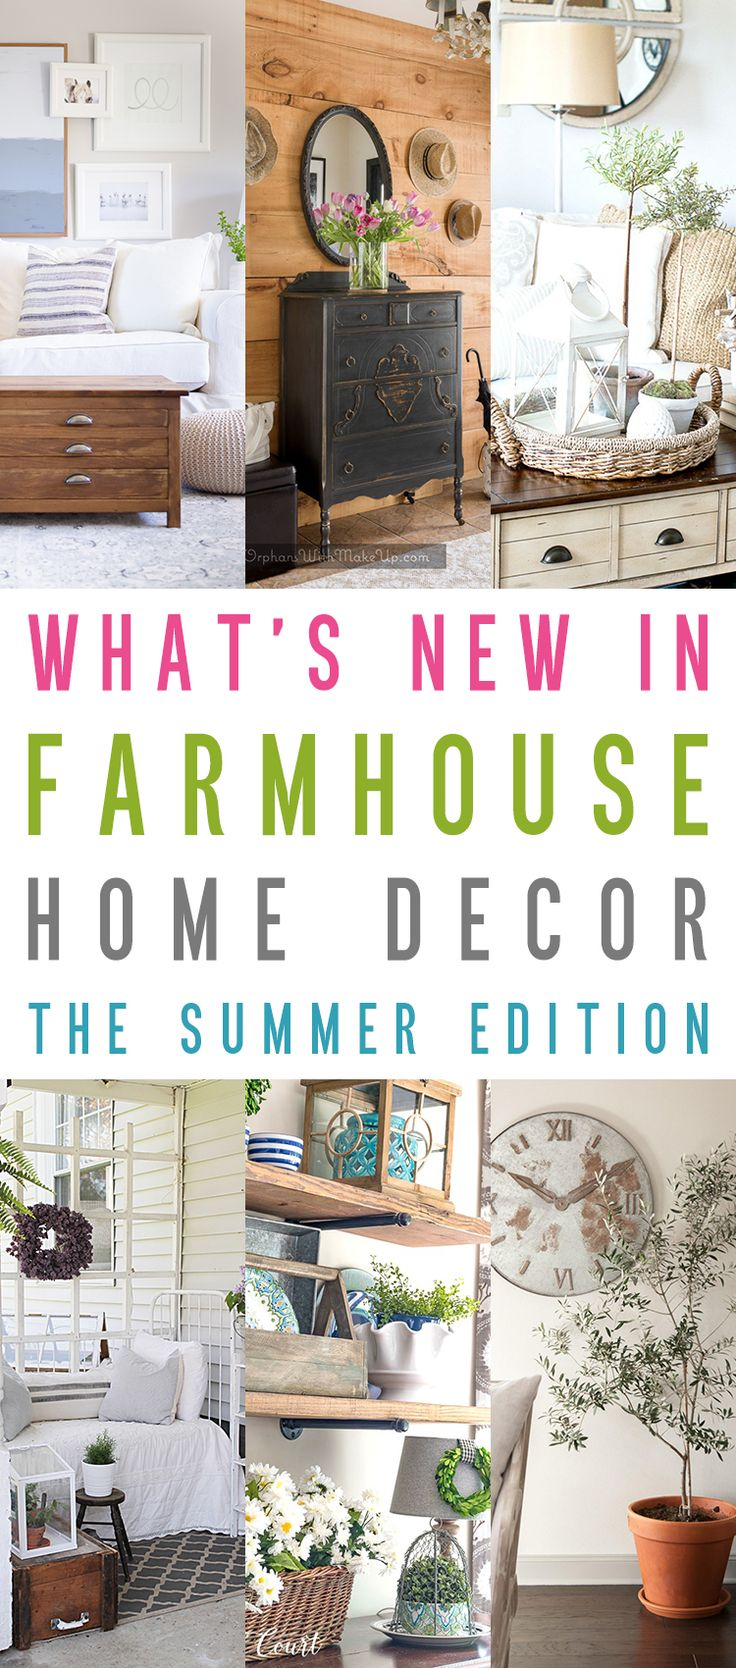 What's New In Farmhouse Home Decor The Summer Edition